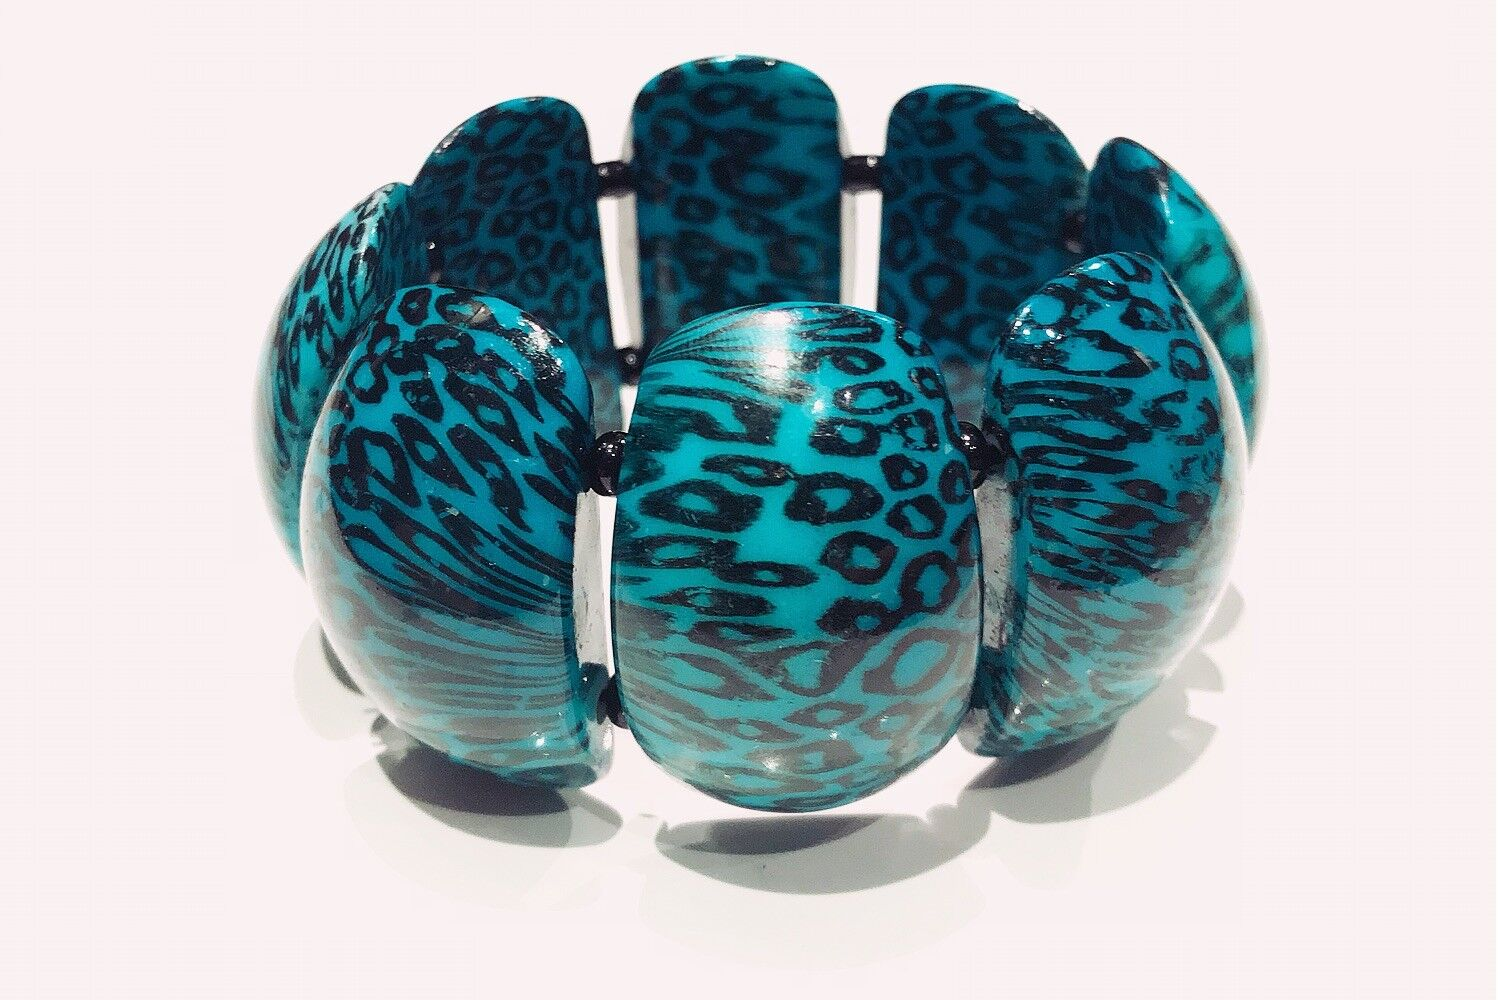 VINTAGE JEWELRY - 1980s Retro Patterned Turquoise… - image 3